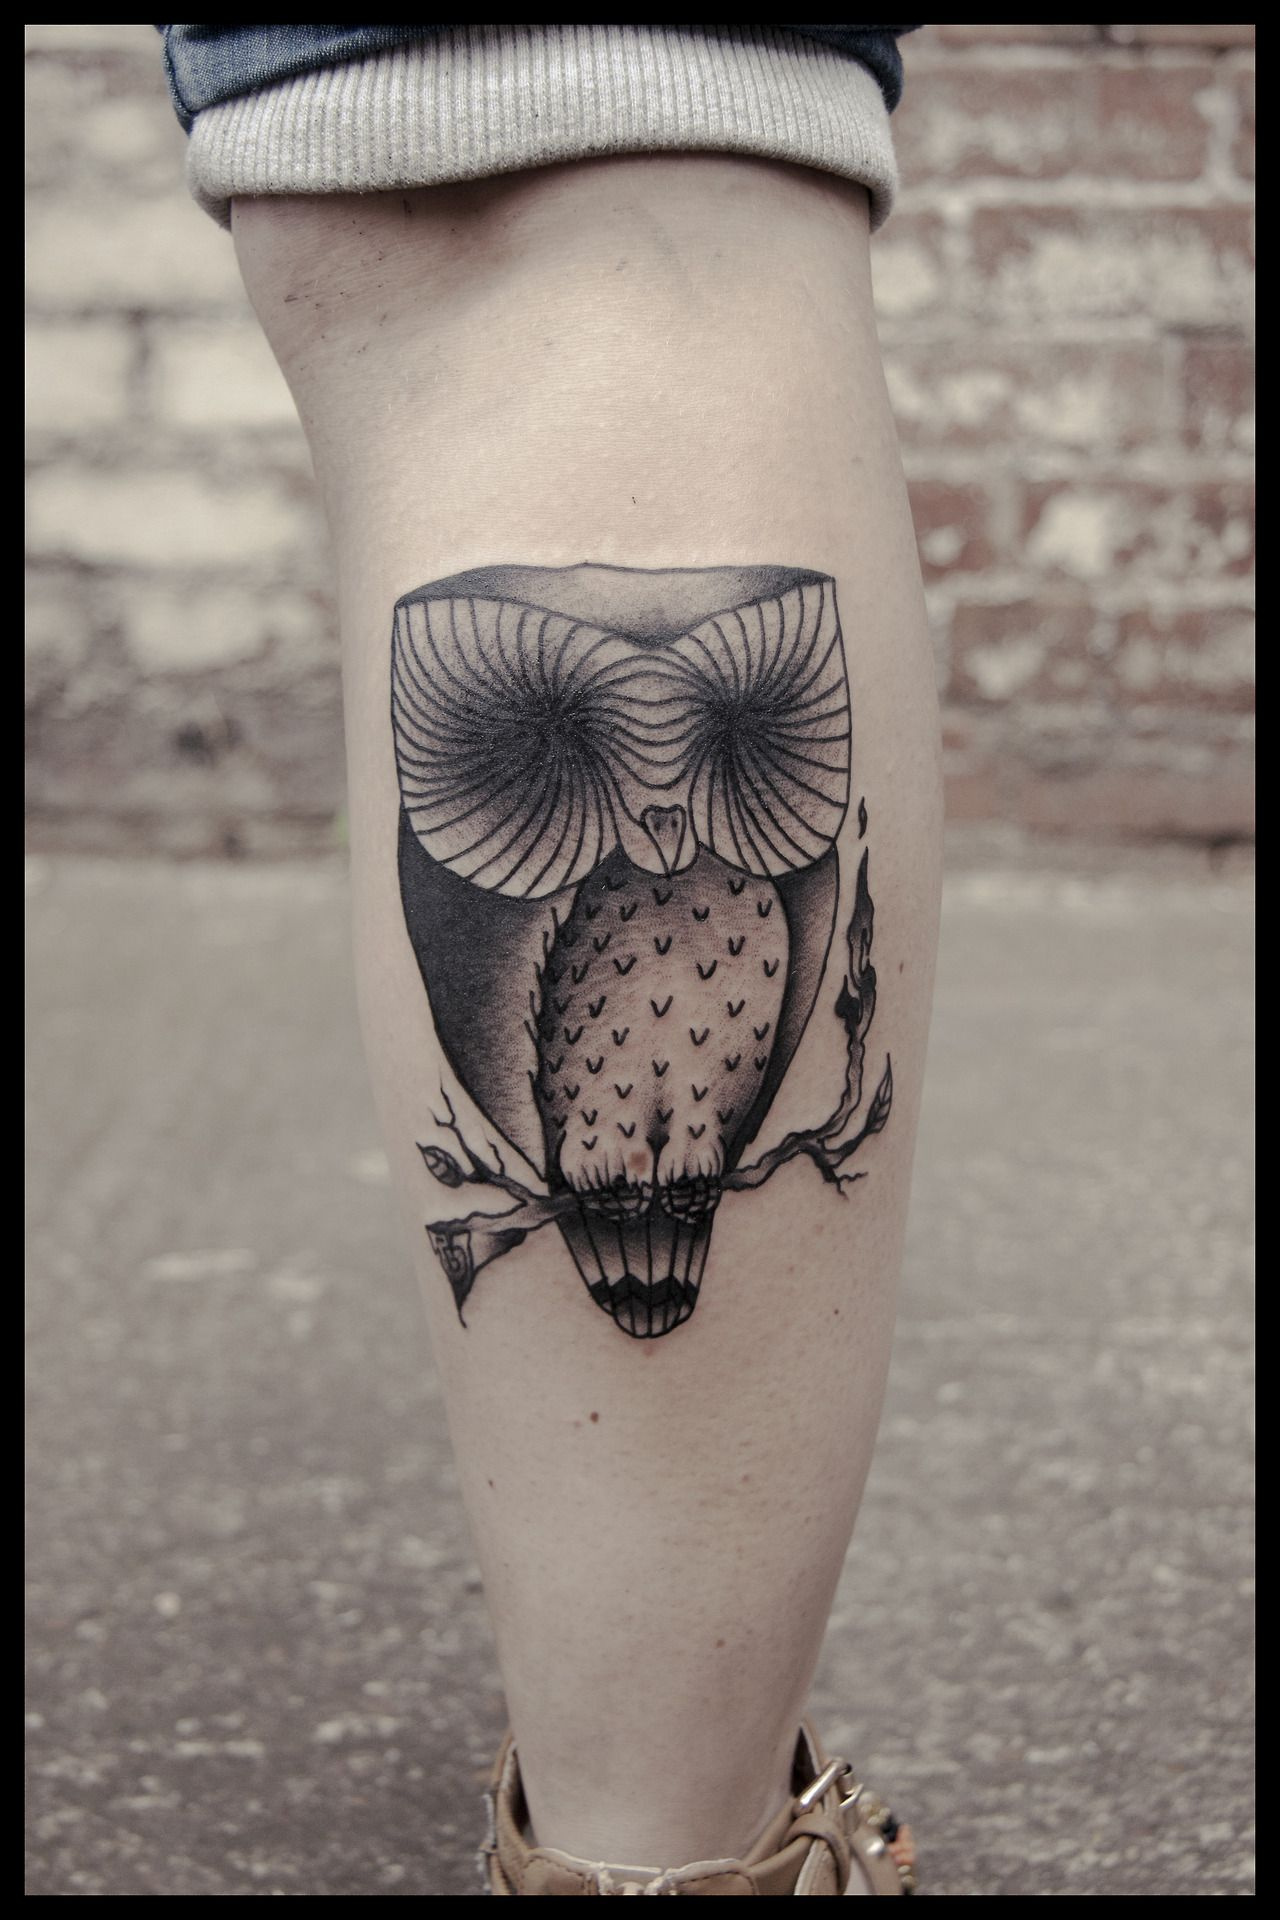 Owl tattoo. I love it!